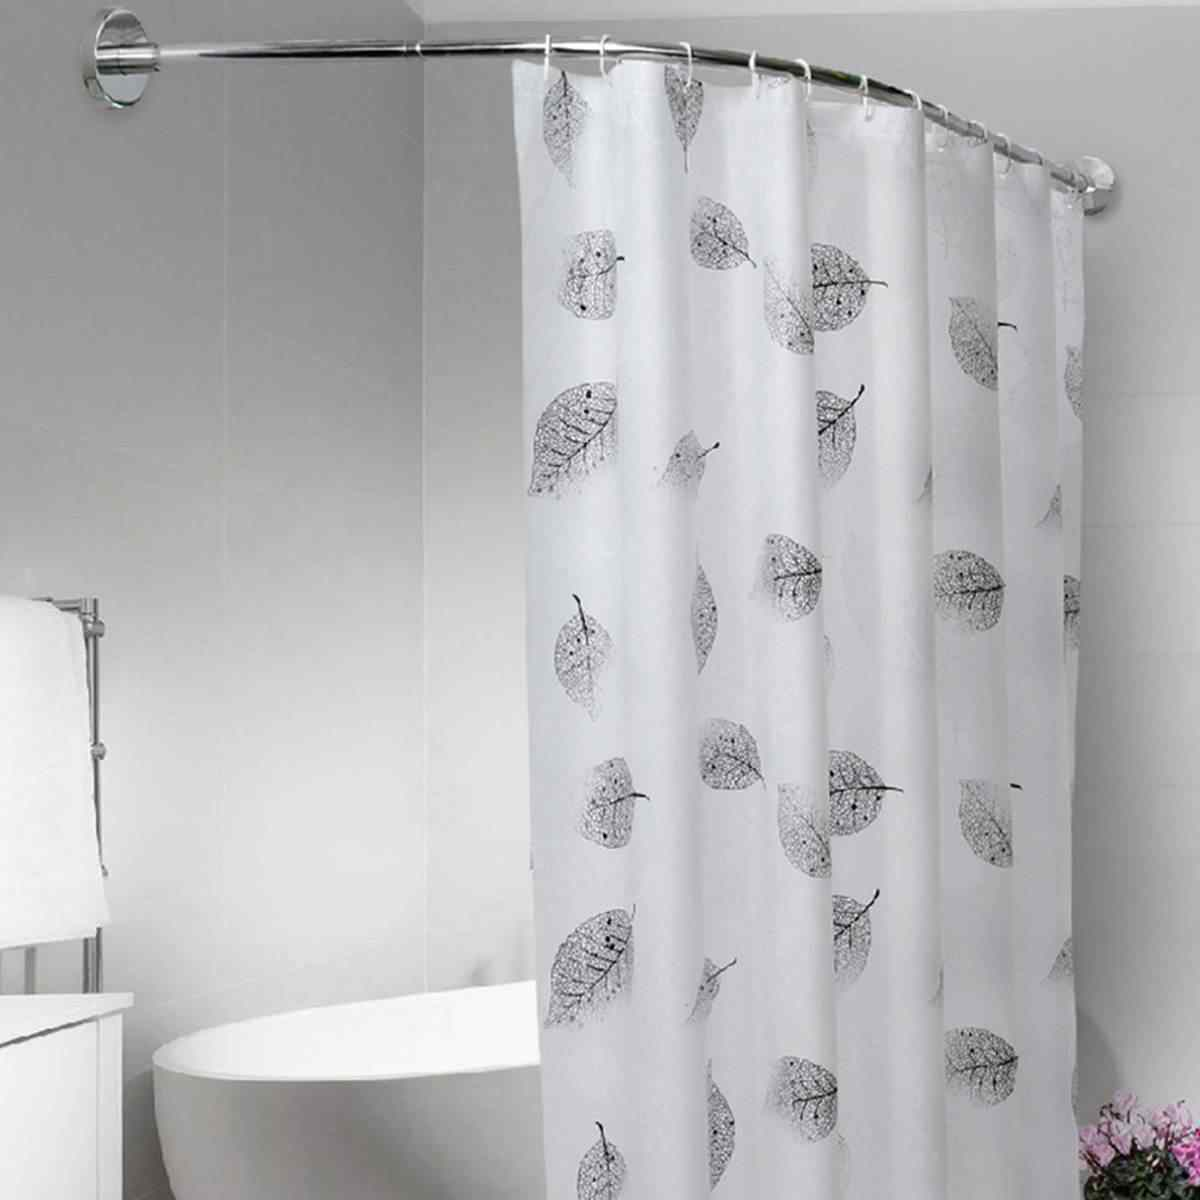 extendable curved shower curtain rod u shaped 201 stainless steel shower curtain poles punch free bathroom curtain rail 6 size